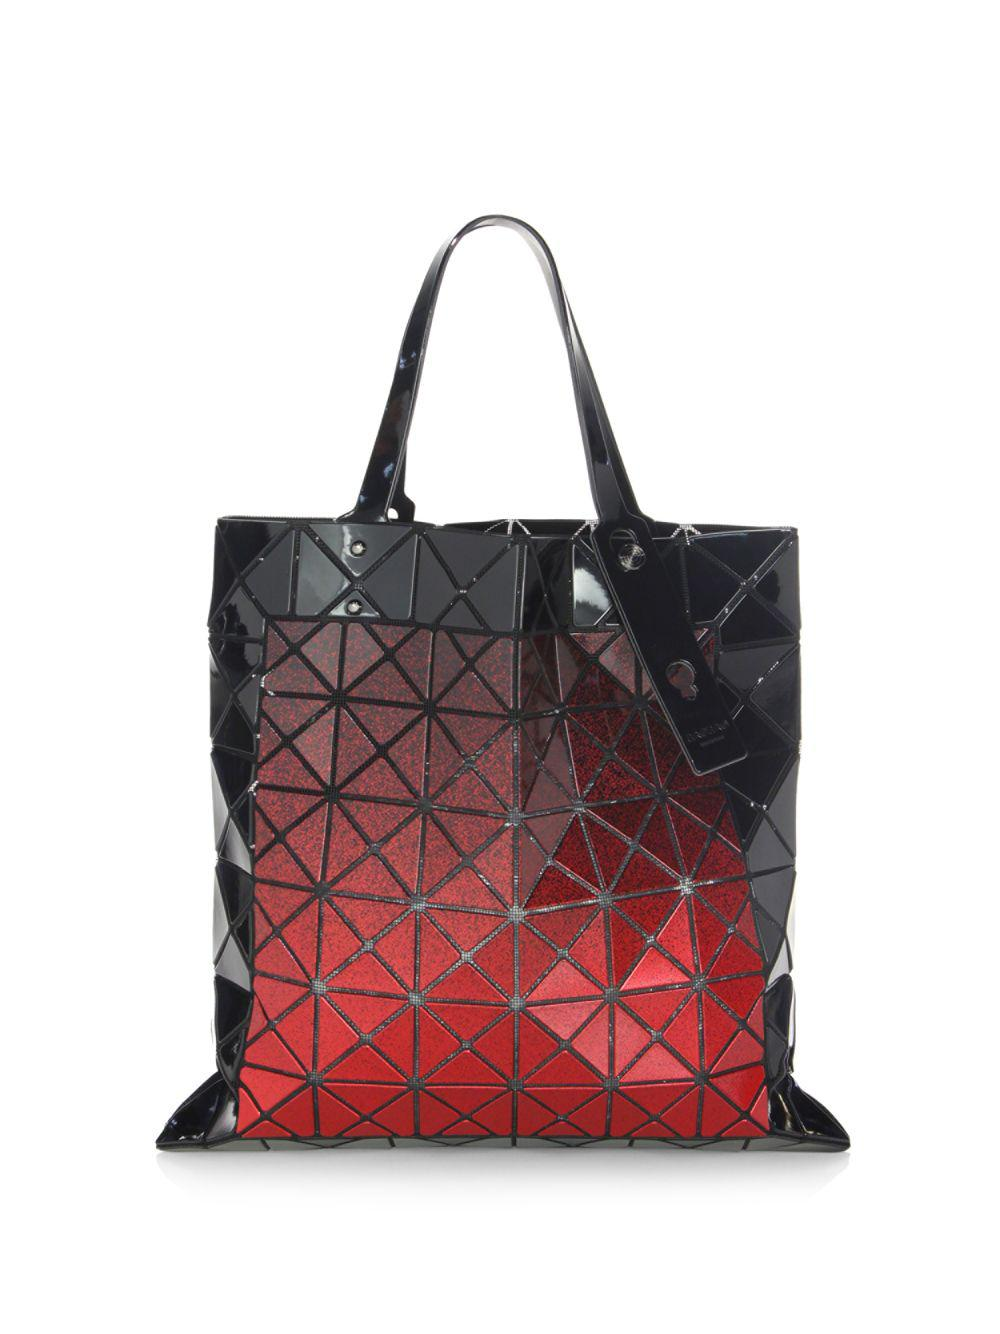 Lyst - Bao Bao Issey Miyake Mado Square Tote in Red - Save 40% bff3fc5ddec57